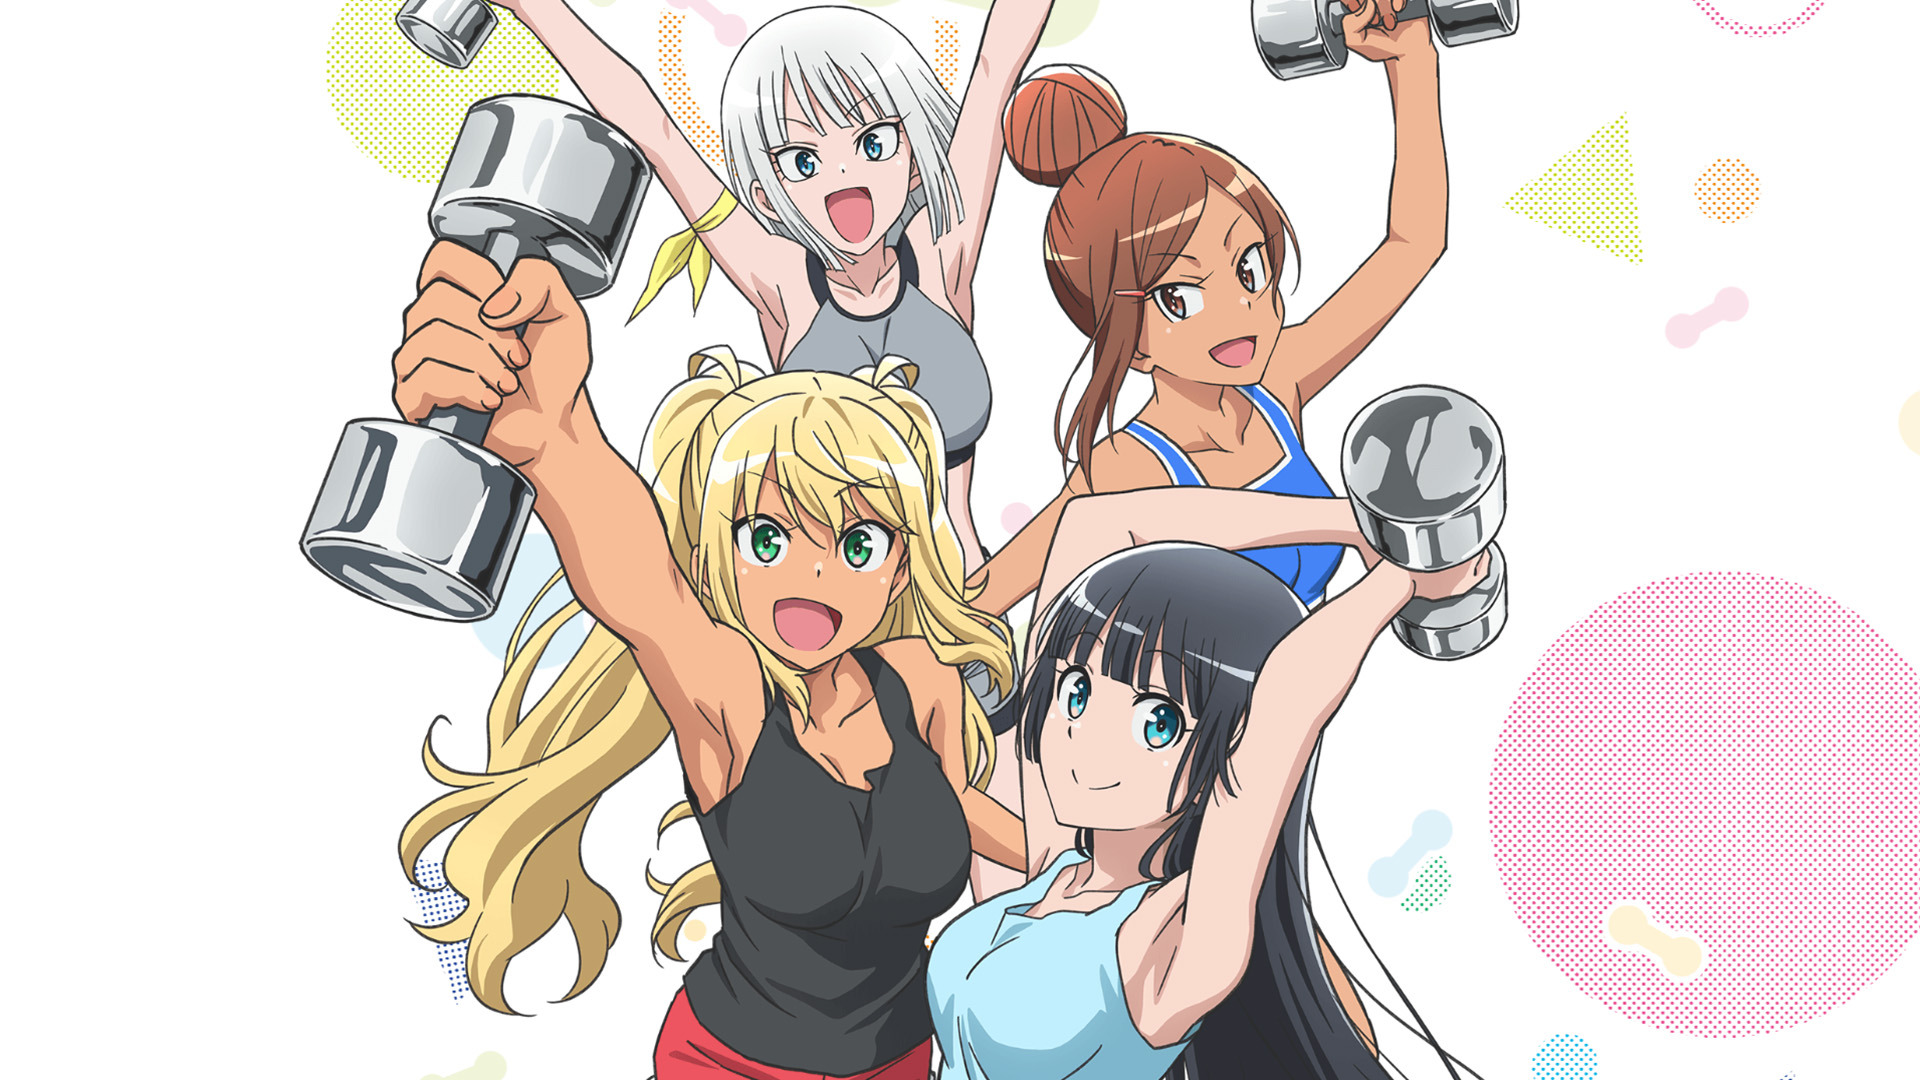 Anime How Heavy Are the Dumbbells You Lift?